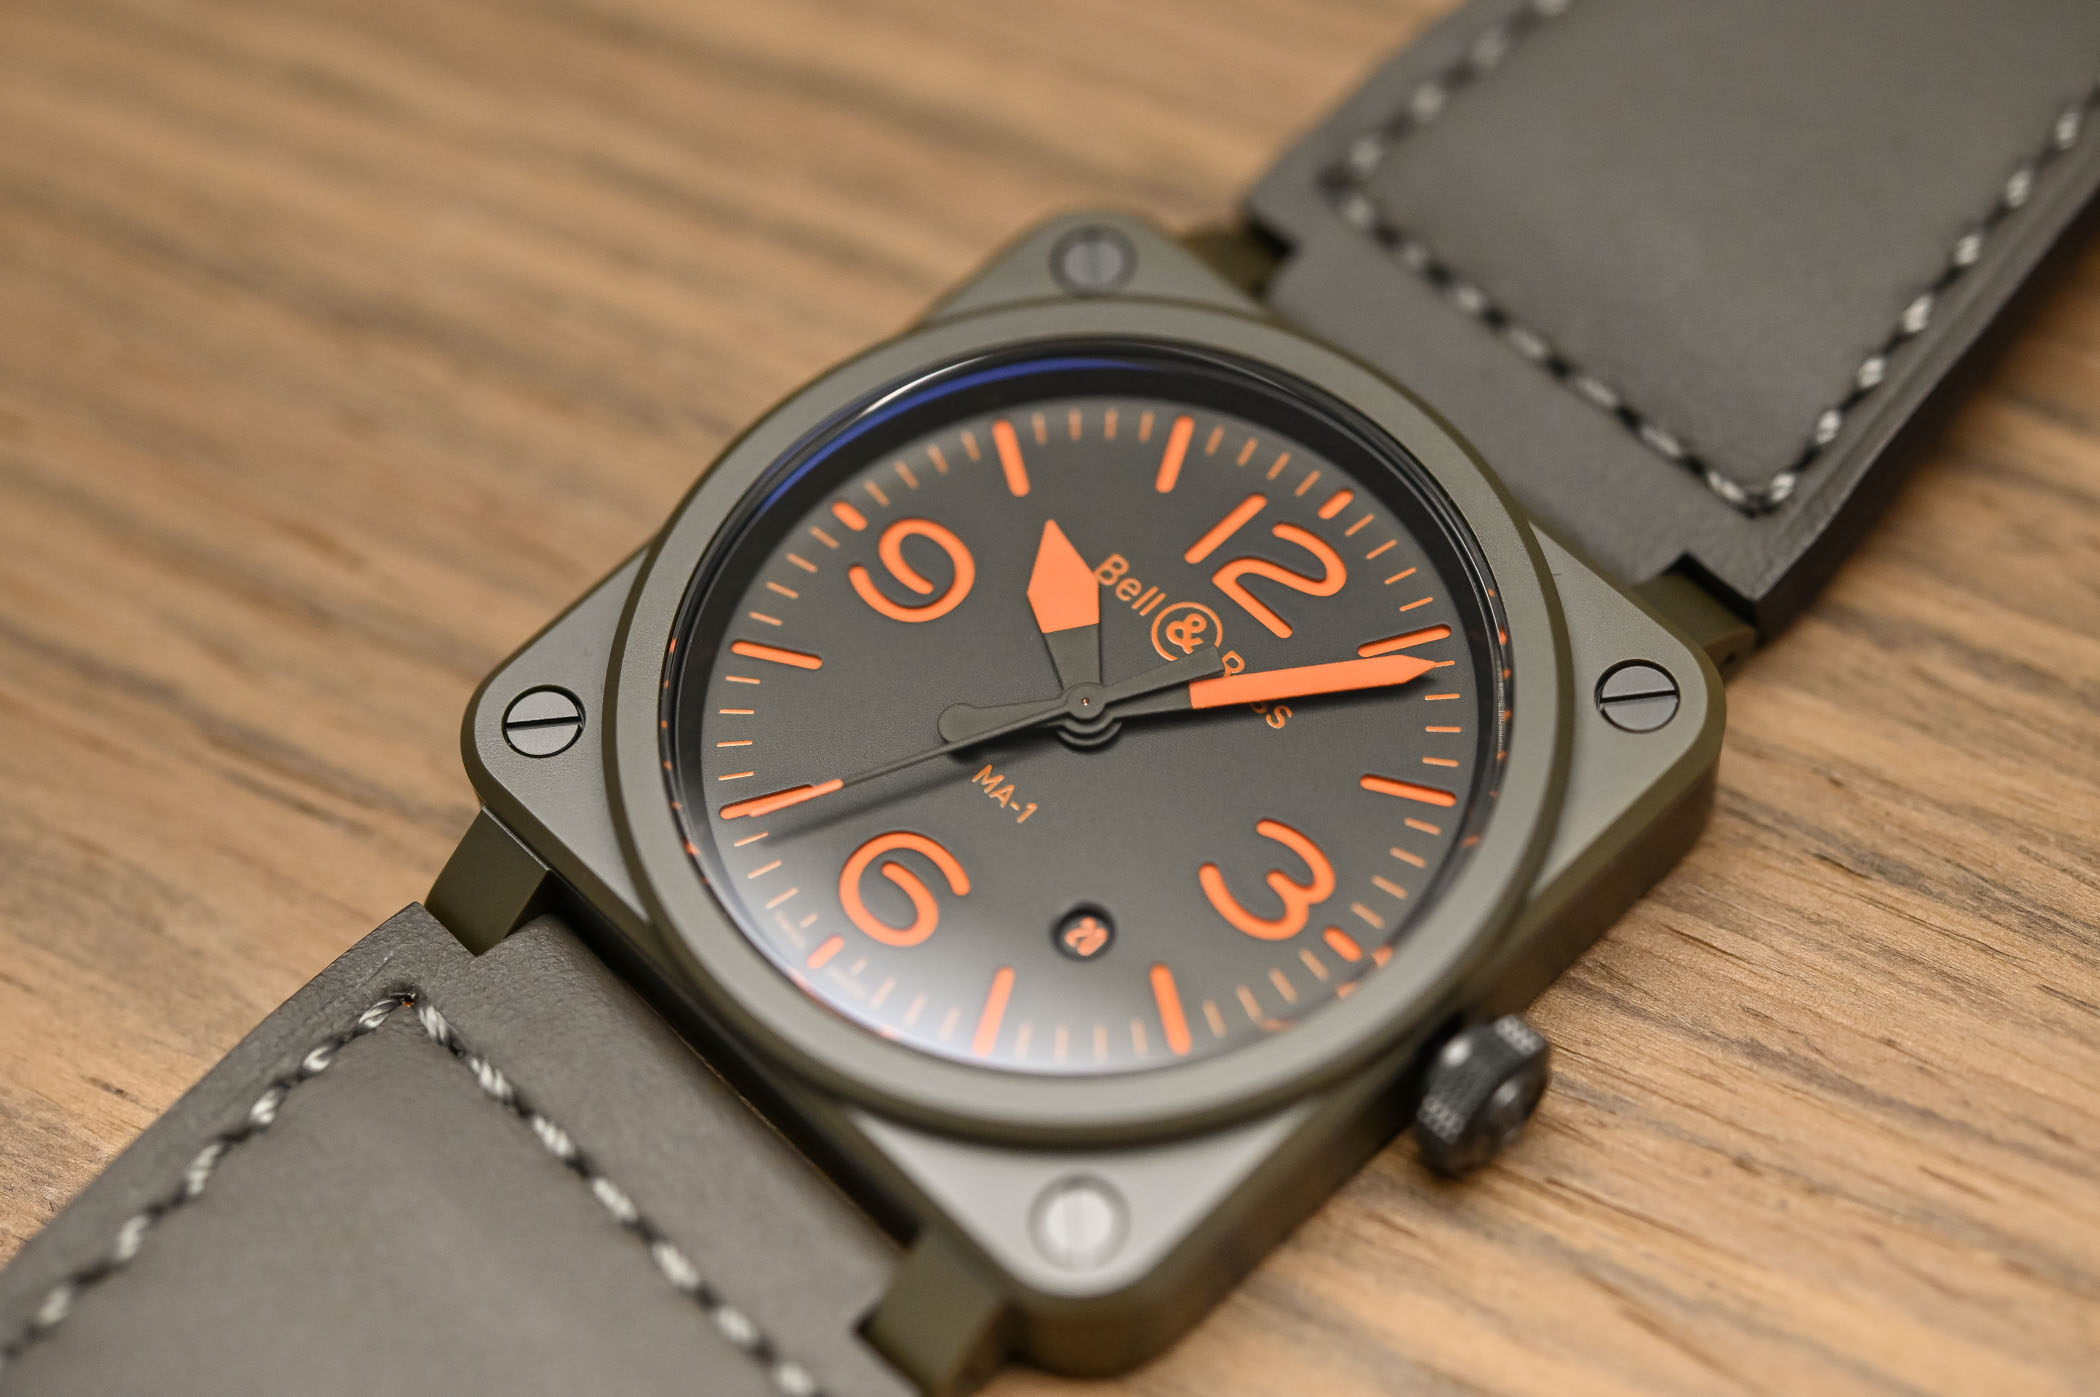 Bell & Ross BR 03-92 MA-1 Military Bomber jacket Pilot